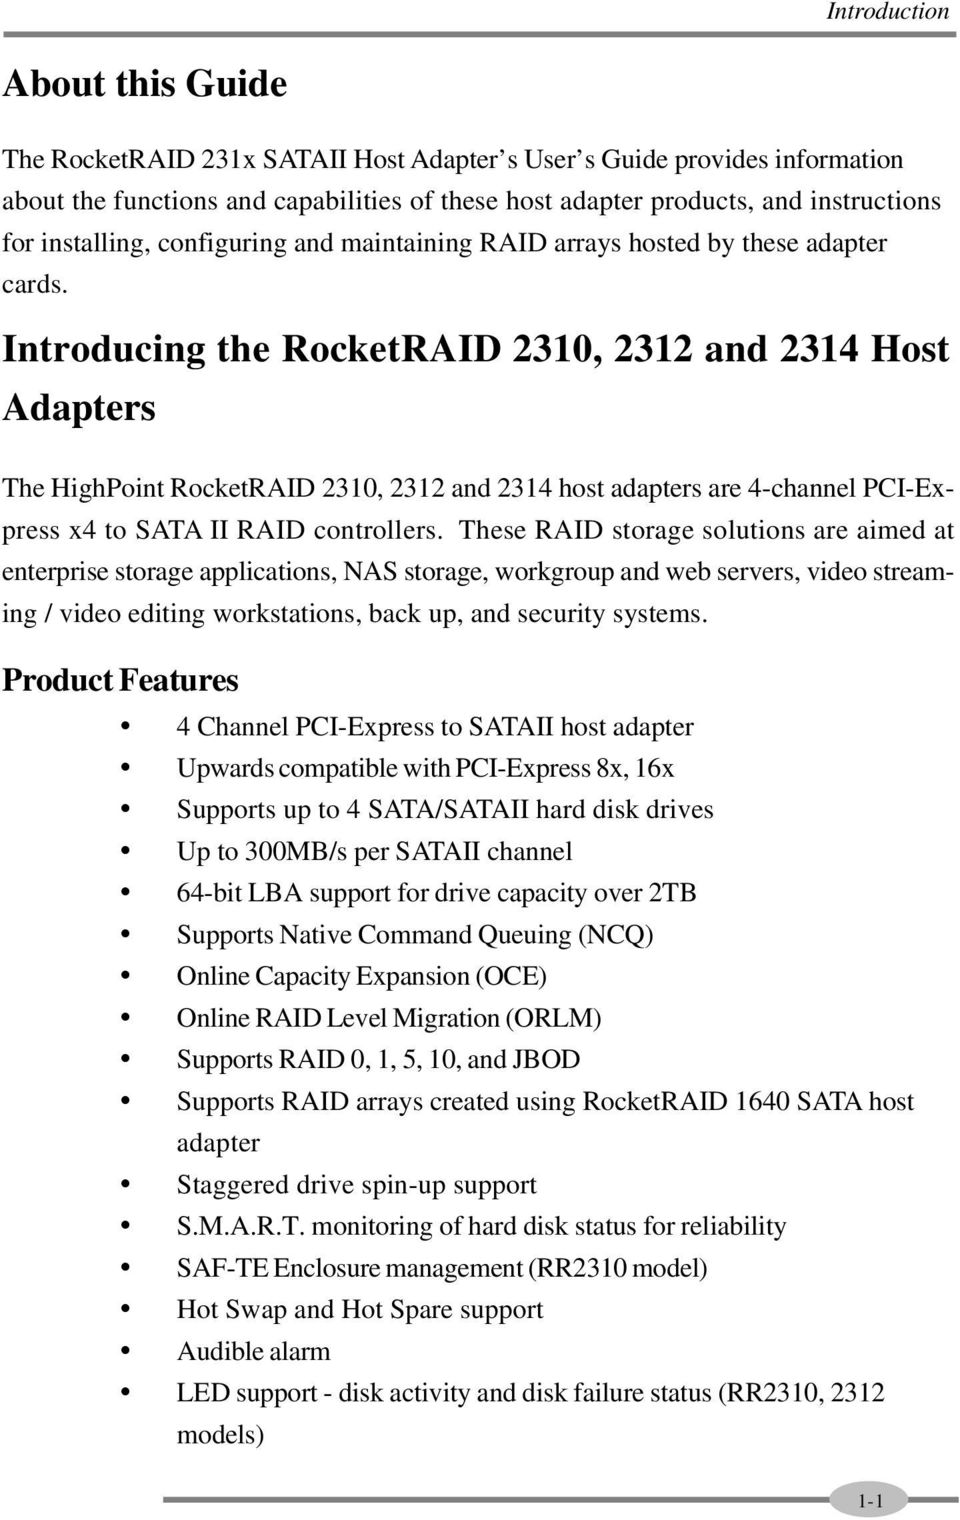 Introducing the RocketRAID 2310, 2312 and 2314 Host Adapters The HighPoint RocketRAID 2310, 2312 and 2314 host adapters are 4-channel PCI-Express x4 to SATA II RAID controllers.